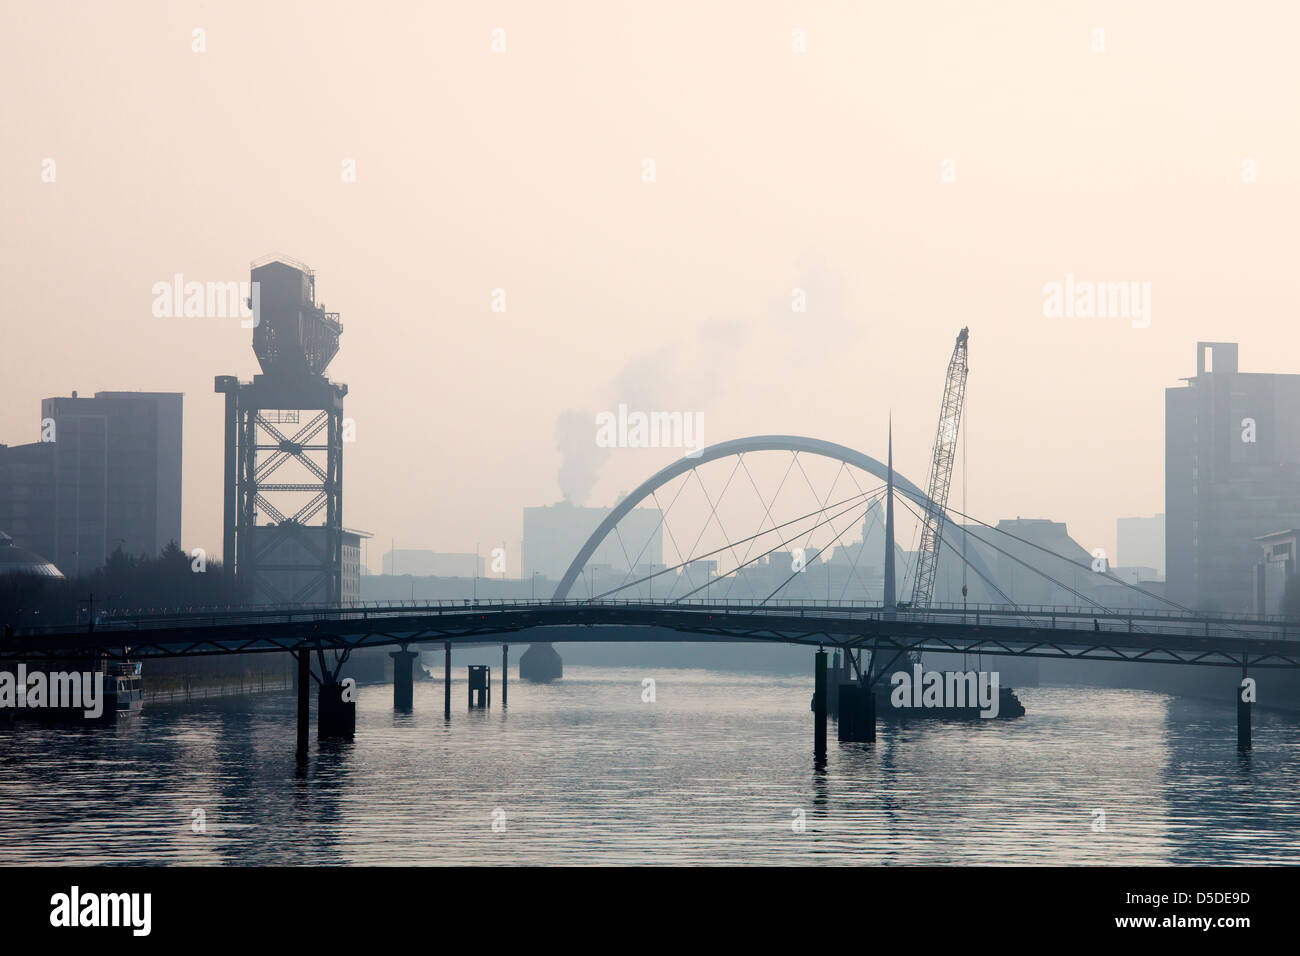 Early morning mist on the River Clyde at Finnieston and Broomielaw, showing the Bells Bridge and the Glasgow Arc, - Stock Image